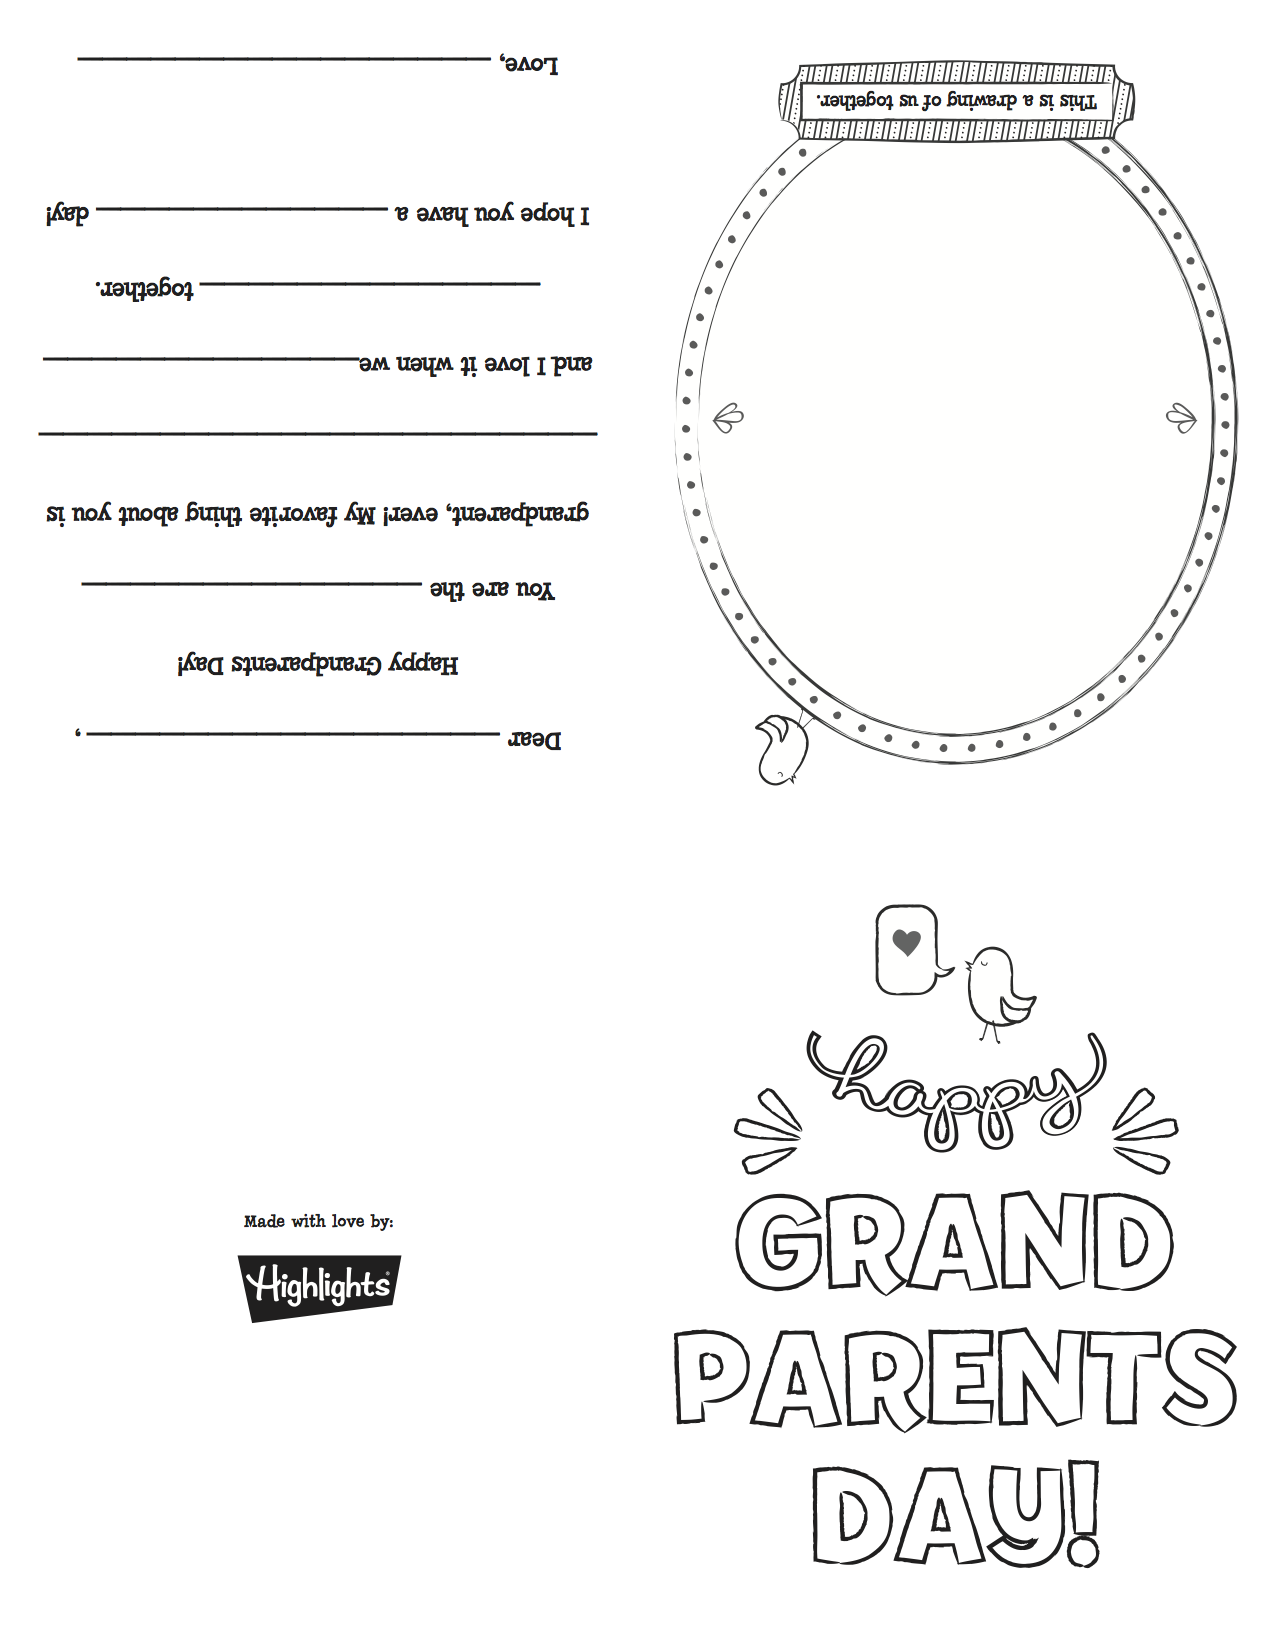 Grandparentsdaycard Copy